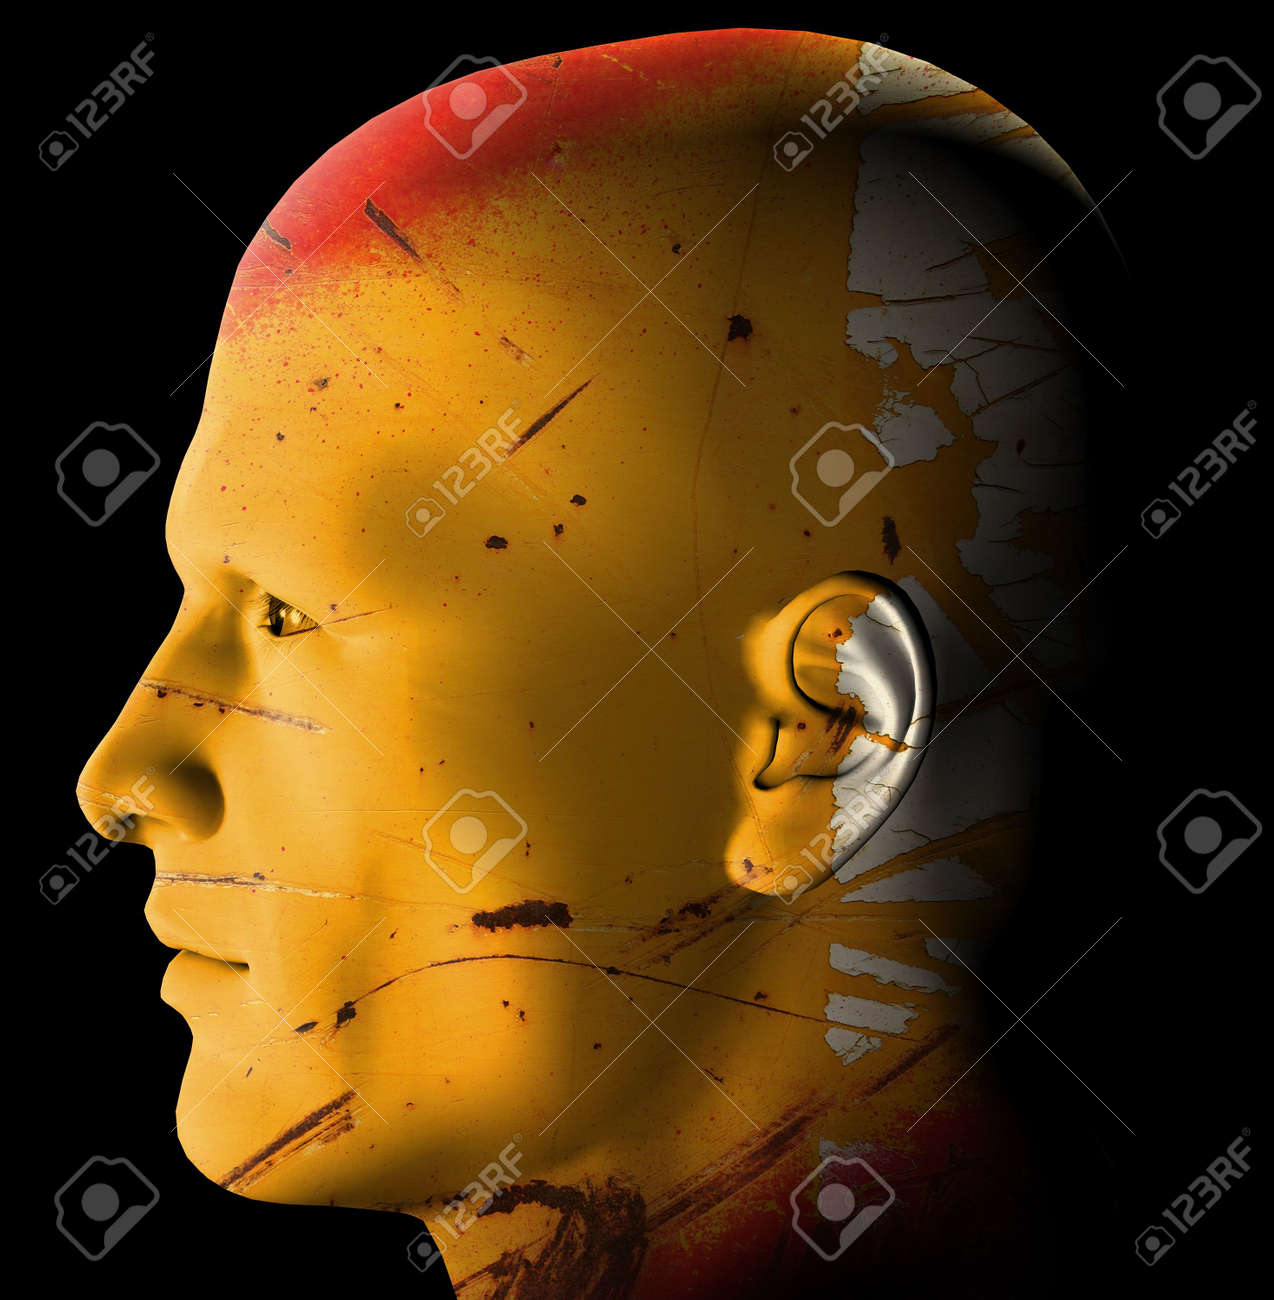 Futuristic rusty android profile. 3d digitally created illustration. Stock Illustration - 5432697